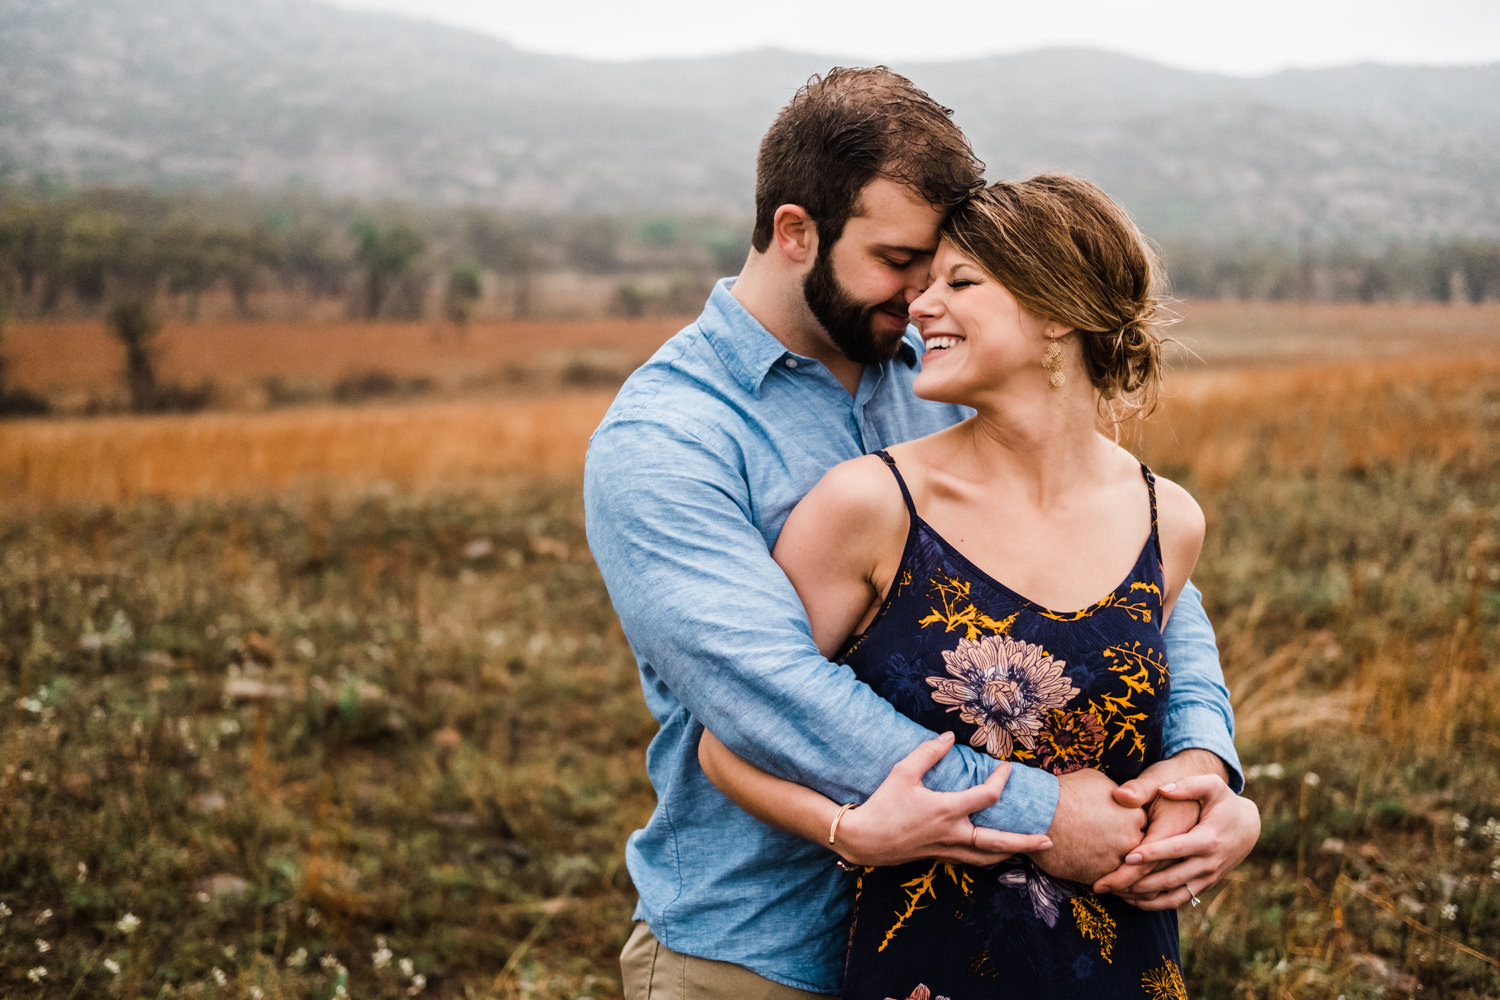 Oklahoma Engagement-Neal Dieker-Oklahoma Wedding Photography-Wichita Mountains-Wichita, Kansas Portrait Photographer-190.jpg